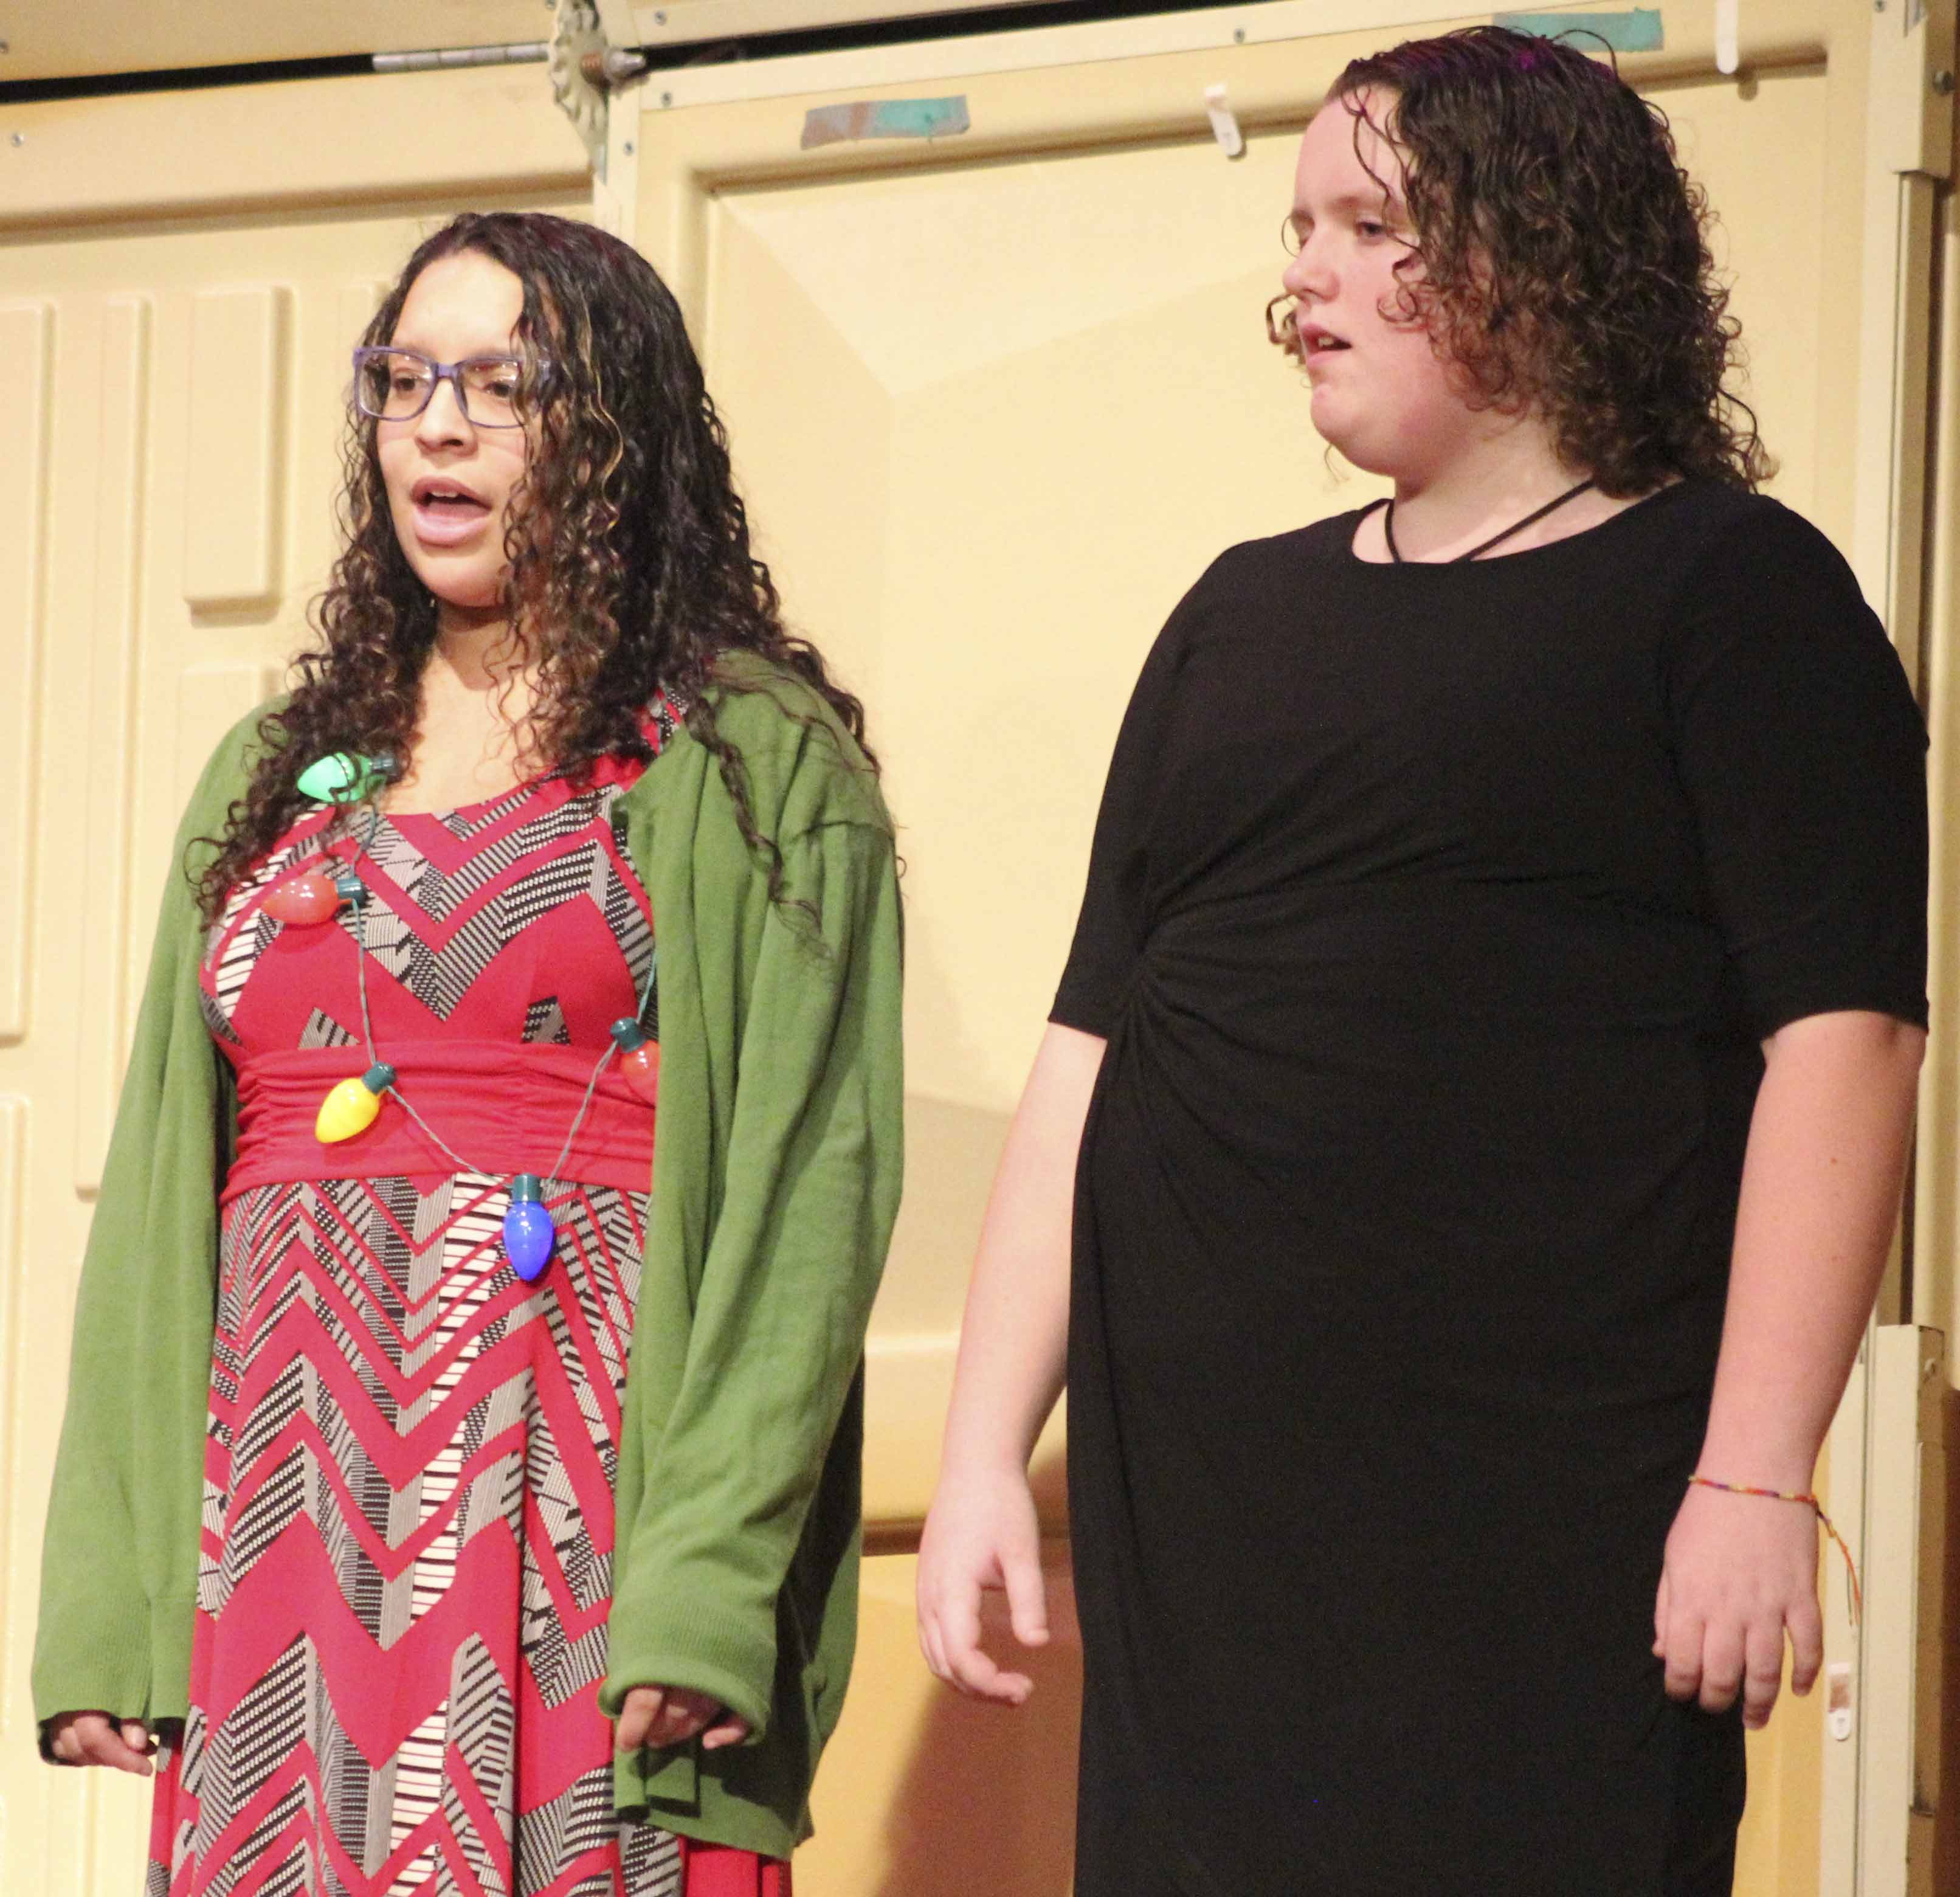 Yasmin Al-Ansar Arnold (left) and Becky Lang were among OPUS auditioners performing at the middle school concert.